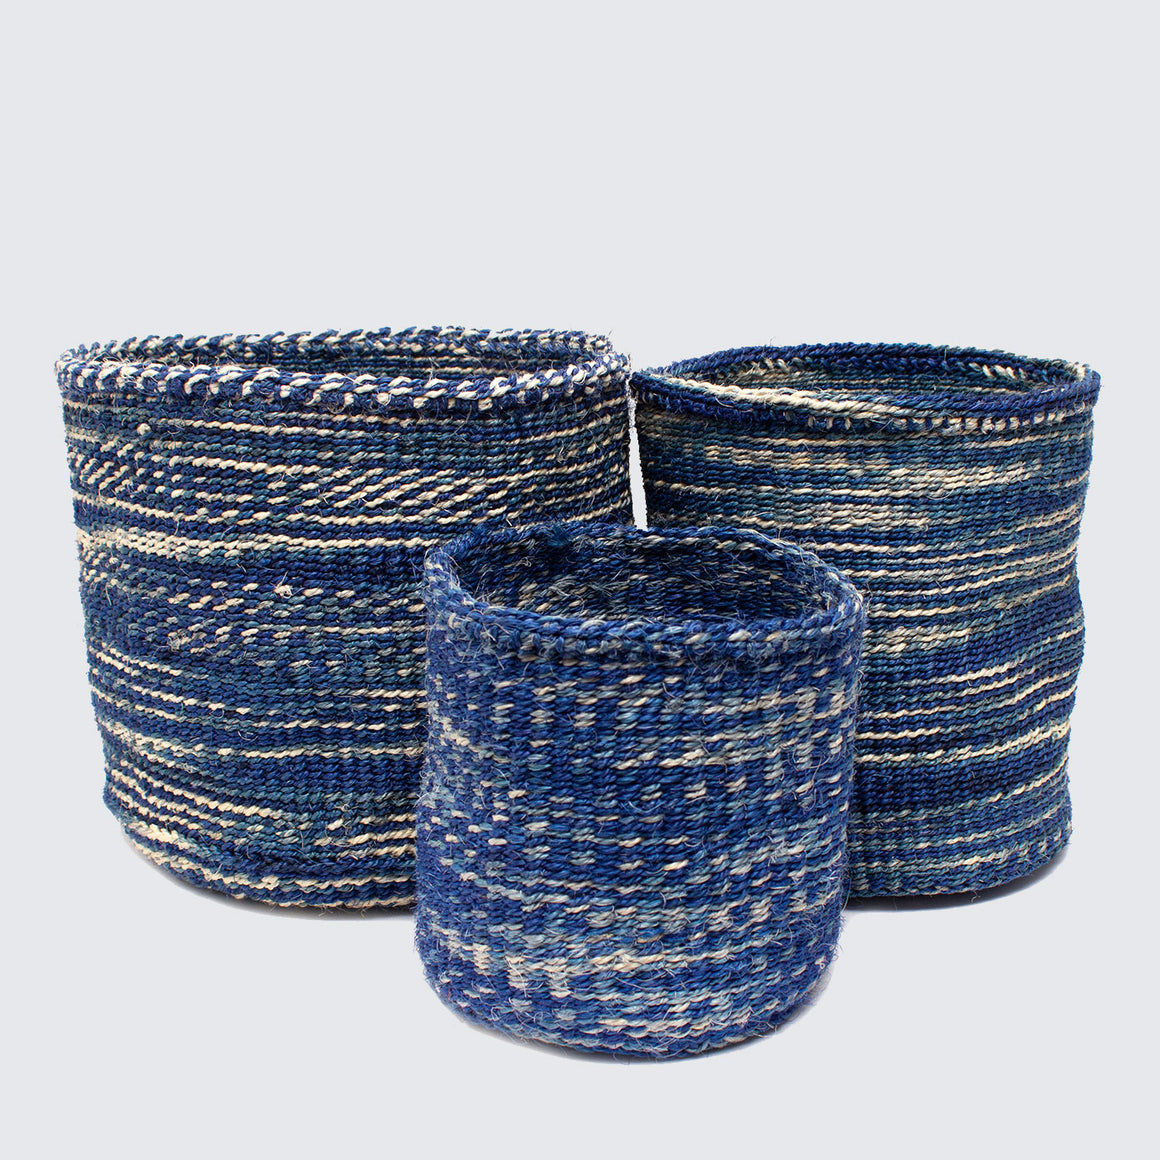 Kenyan Woven Set Of 3 Baskets 'Blue Marl'